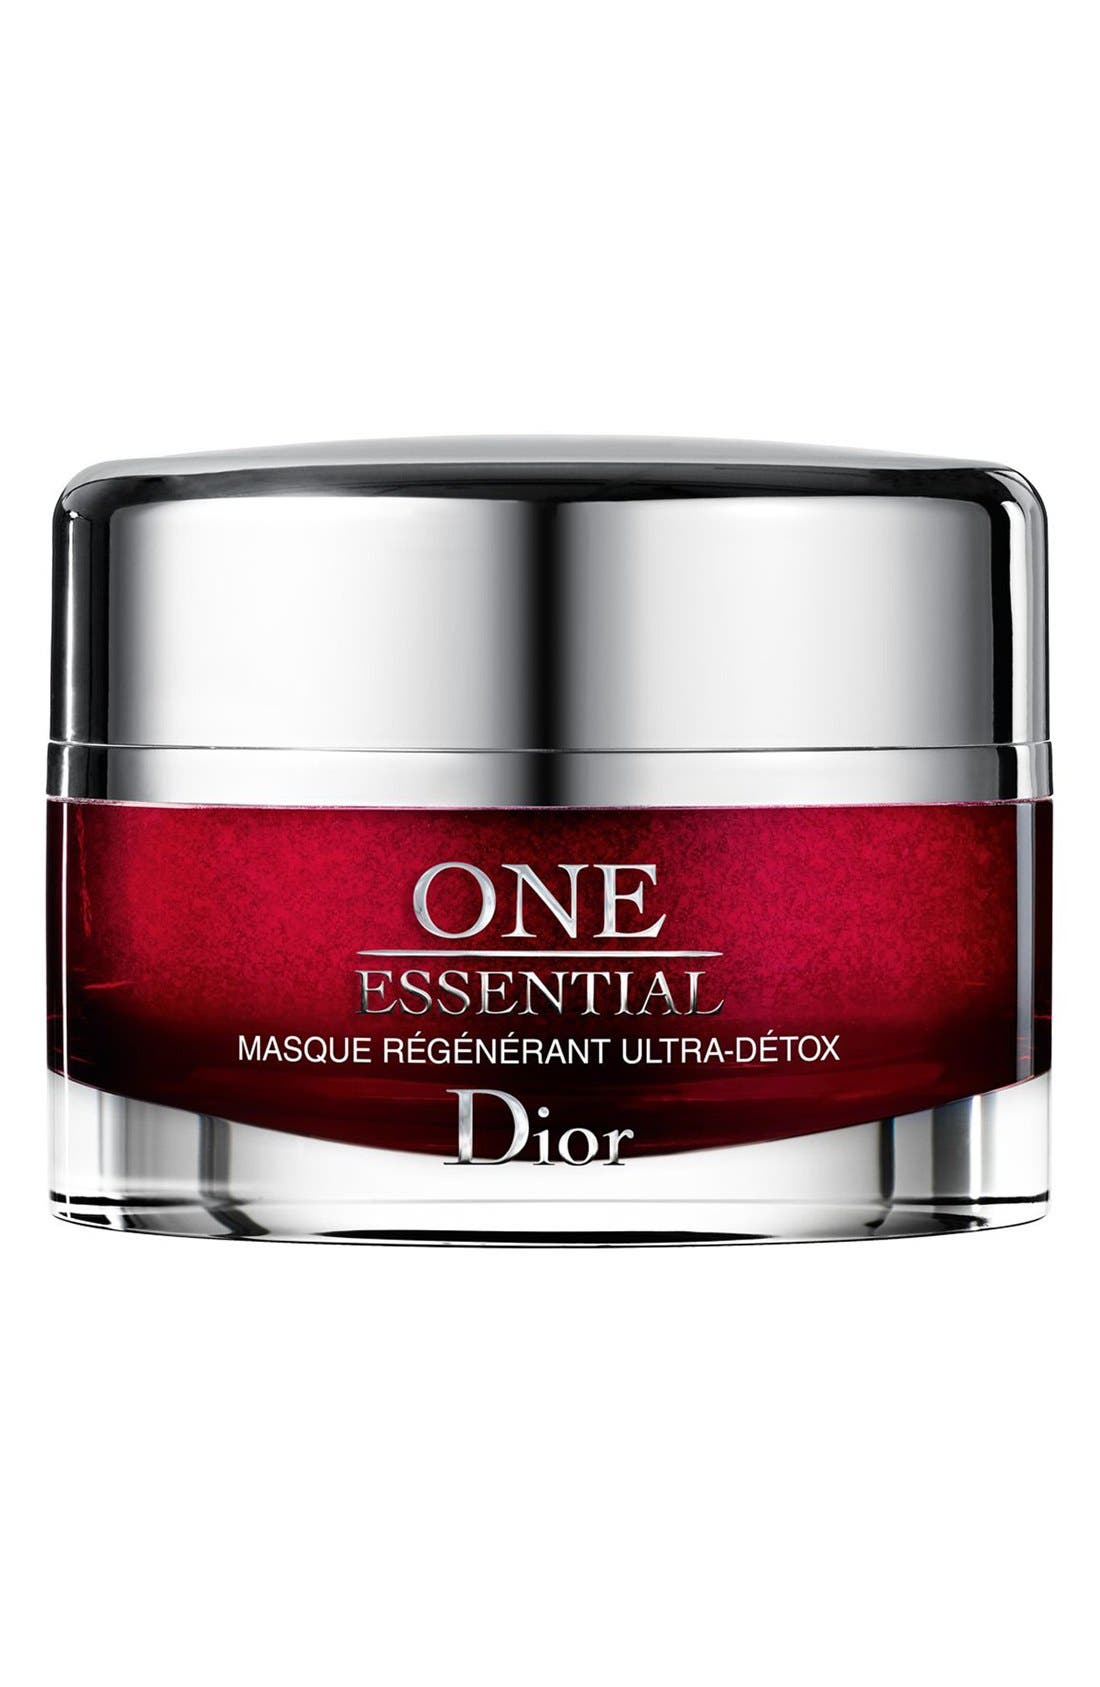 'One Essential' Ultra-Detox Treatment-Mask,                         Main,                         color, 000